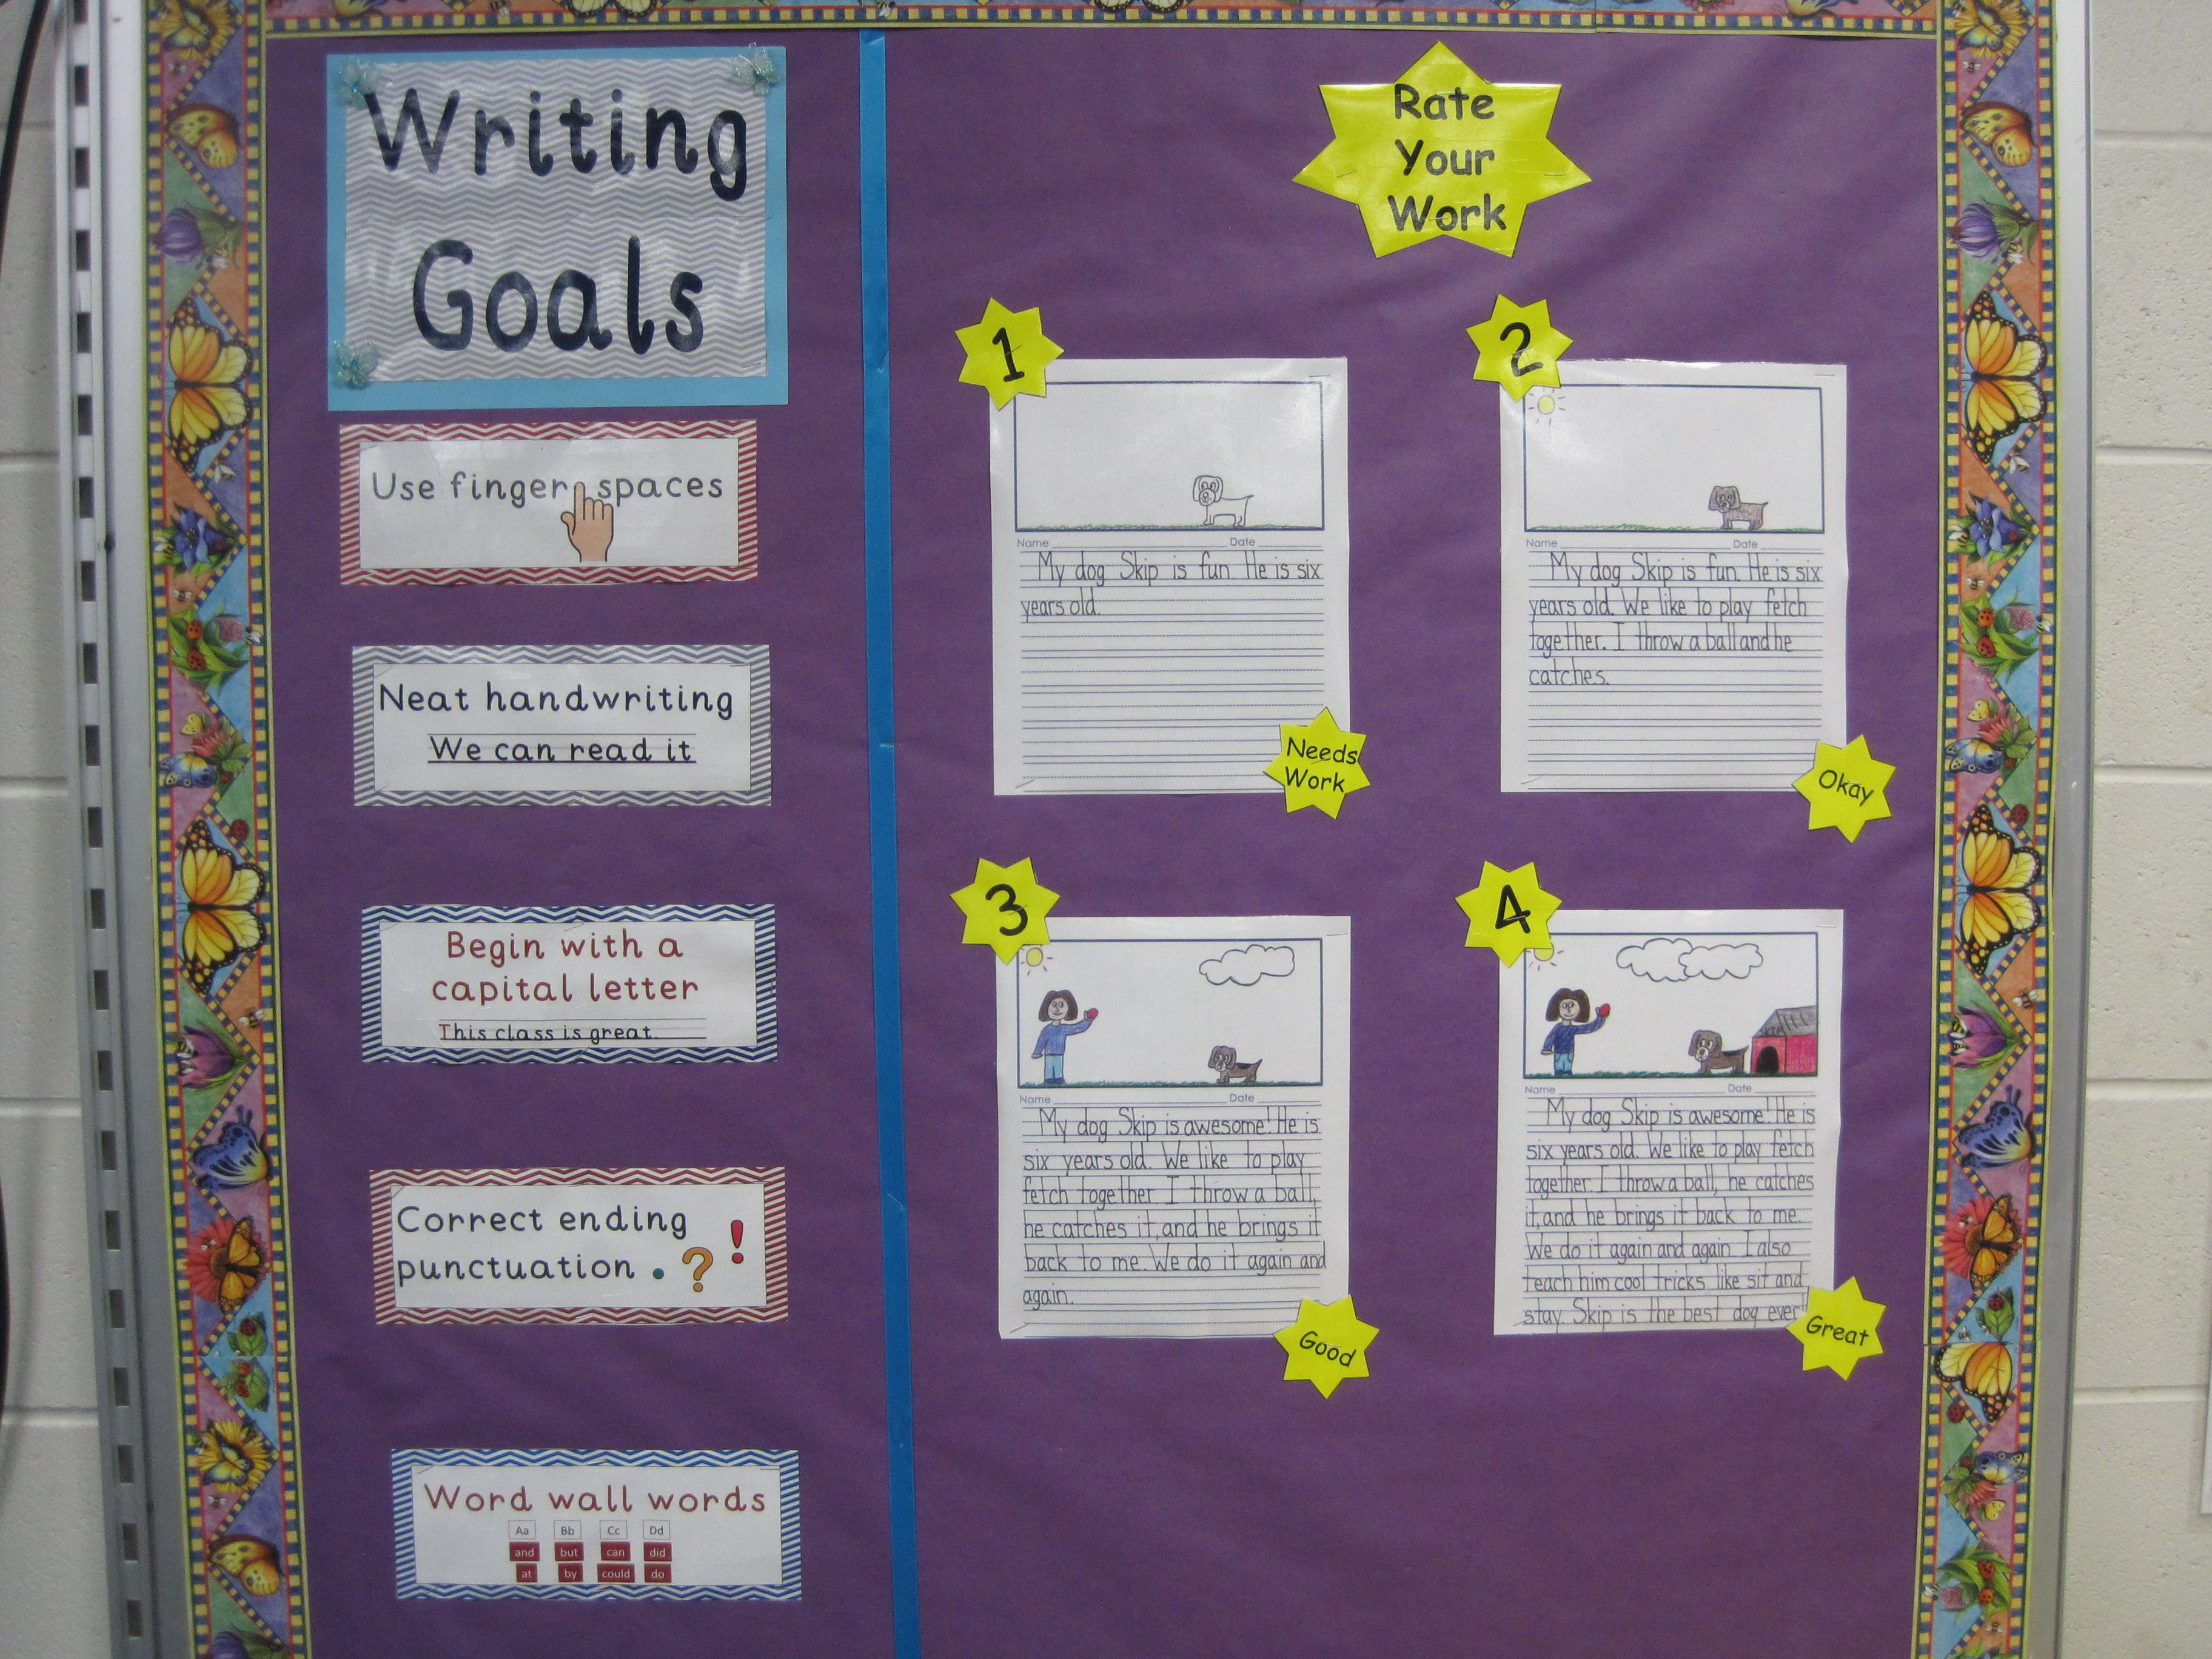 My Writing Bulletin Board Has Both Writing Goals And Rate